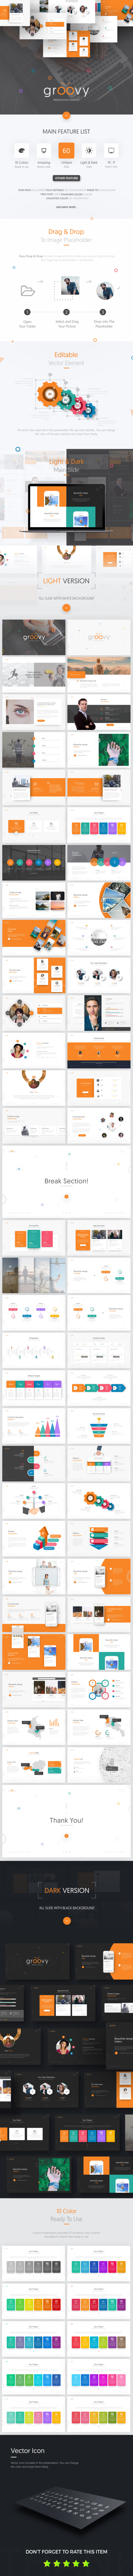 Groovy Presentation Template - Business PowerPoint Templates